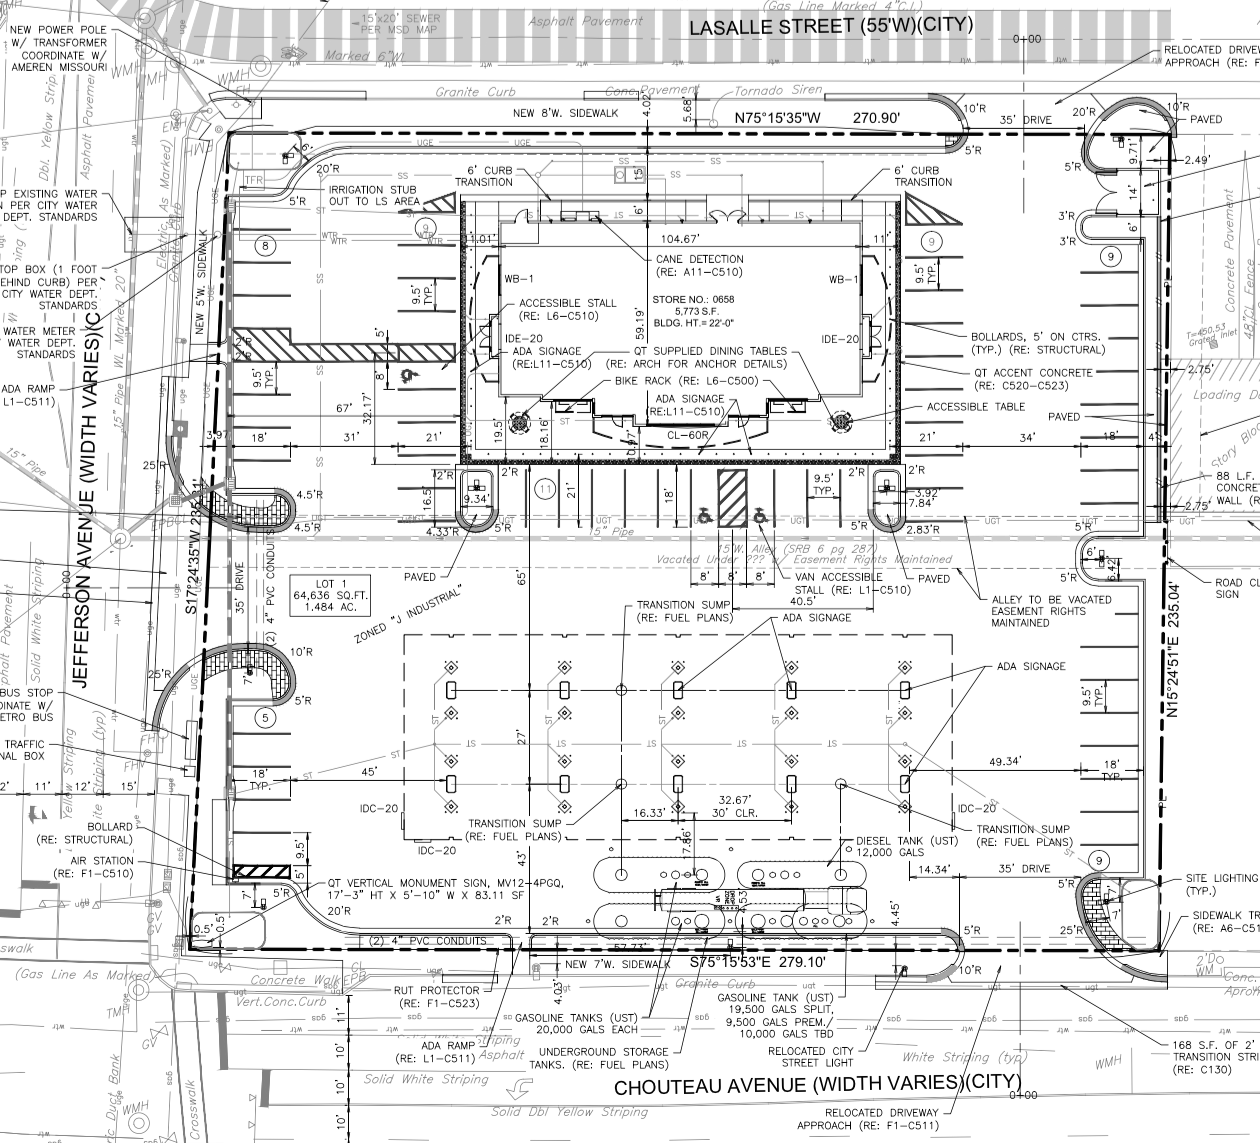 QuikTrip proposal site plan - St. Louis, MO